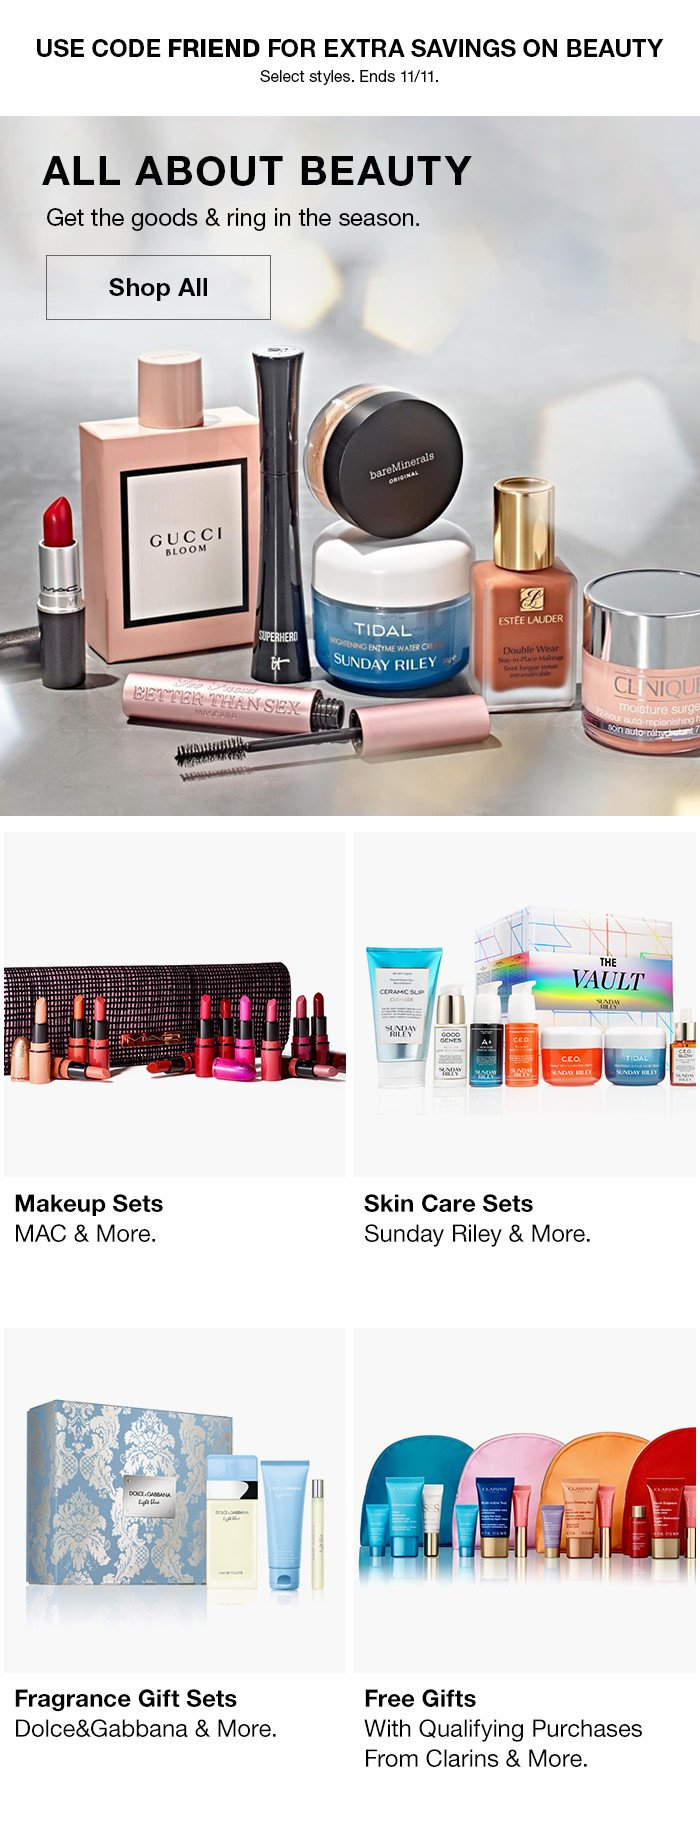 Use Code Friend For Extra Savings on Beauty, All About Beauty, Shop Now, Makeup Sets, Skin Care Sets, Fragrance Gift Sets, Free Gifts